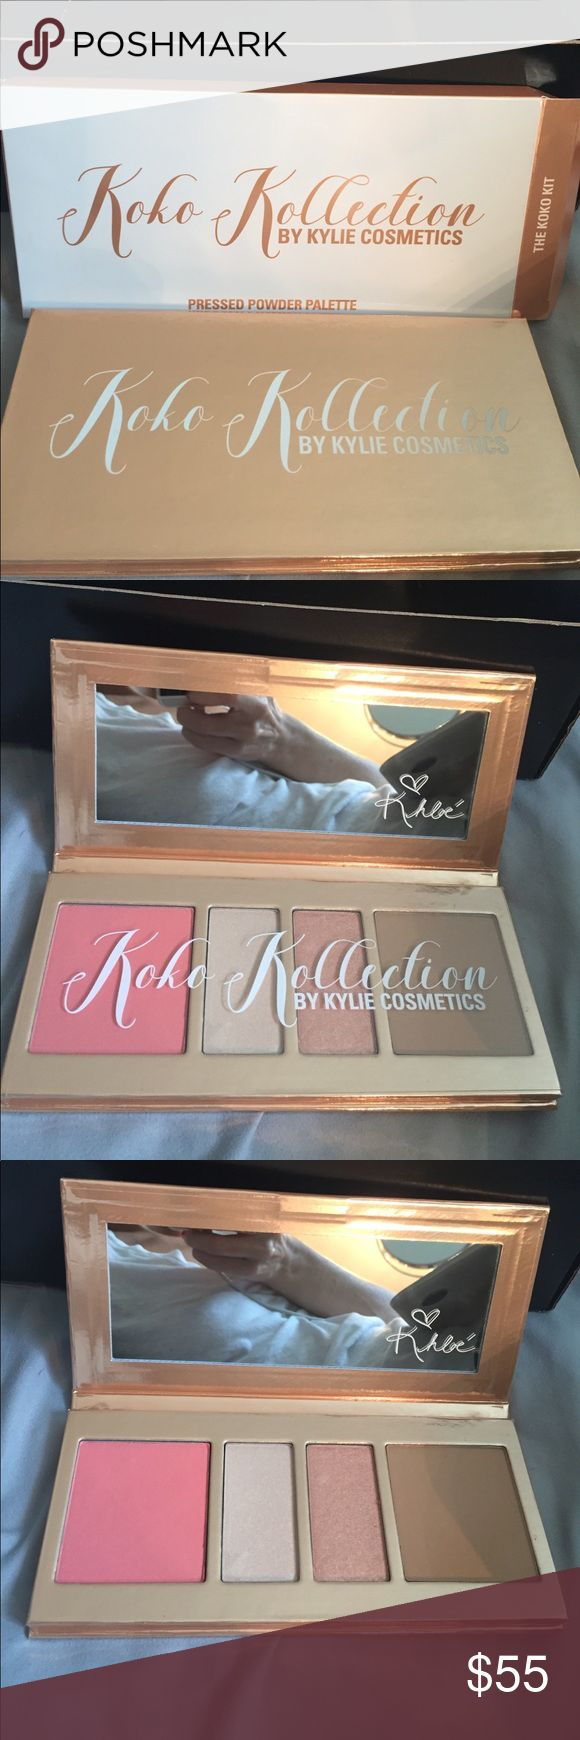 NIB AUTH KYLIE KOKO KOLLECTION FACE PALETTE 🚫NO TRADES, thx!🚫 Guaranteed 100% authentic Kylie Cosmetics the KOKO KOLLECTION pressed powder face palette contains (1) satin pressed powder BLUSH in Rodeo Drive - a warm pink satin. There are (2) pressed ILLUMINATING POWDERS - the first on left is Troop Beverly Hills - a shimmering soft gold and the one on the middle right is 90210 - a shimmering golden Peach. The (1) matte pressed powder bronzer in Hollywood Blvd on the far right is a satin…